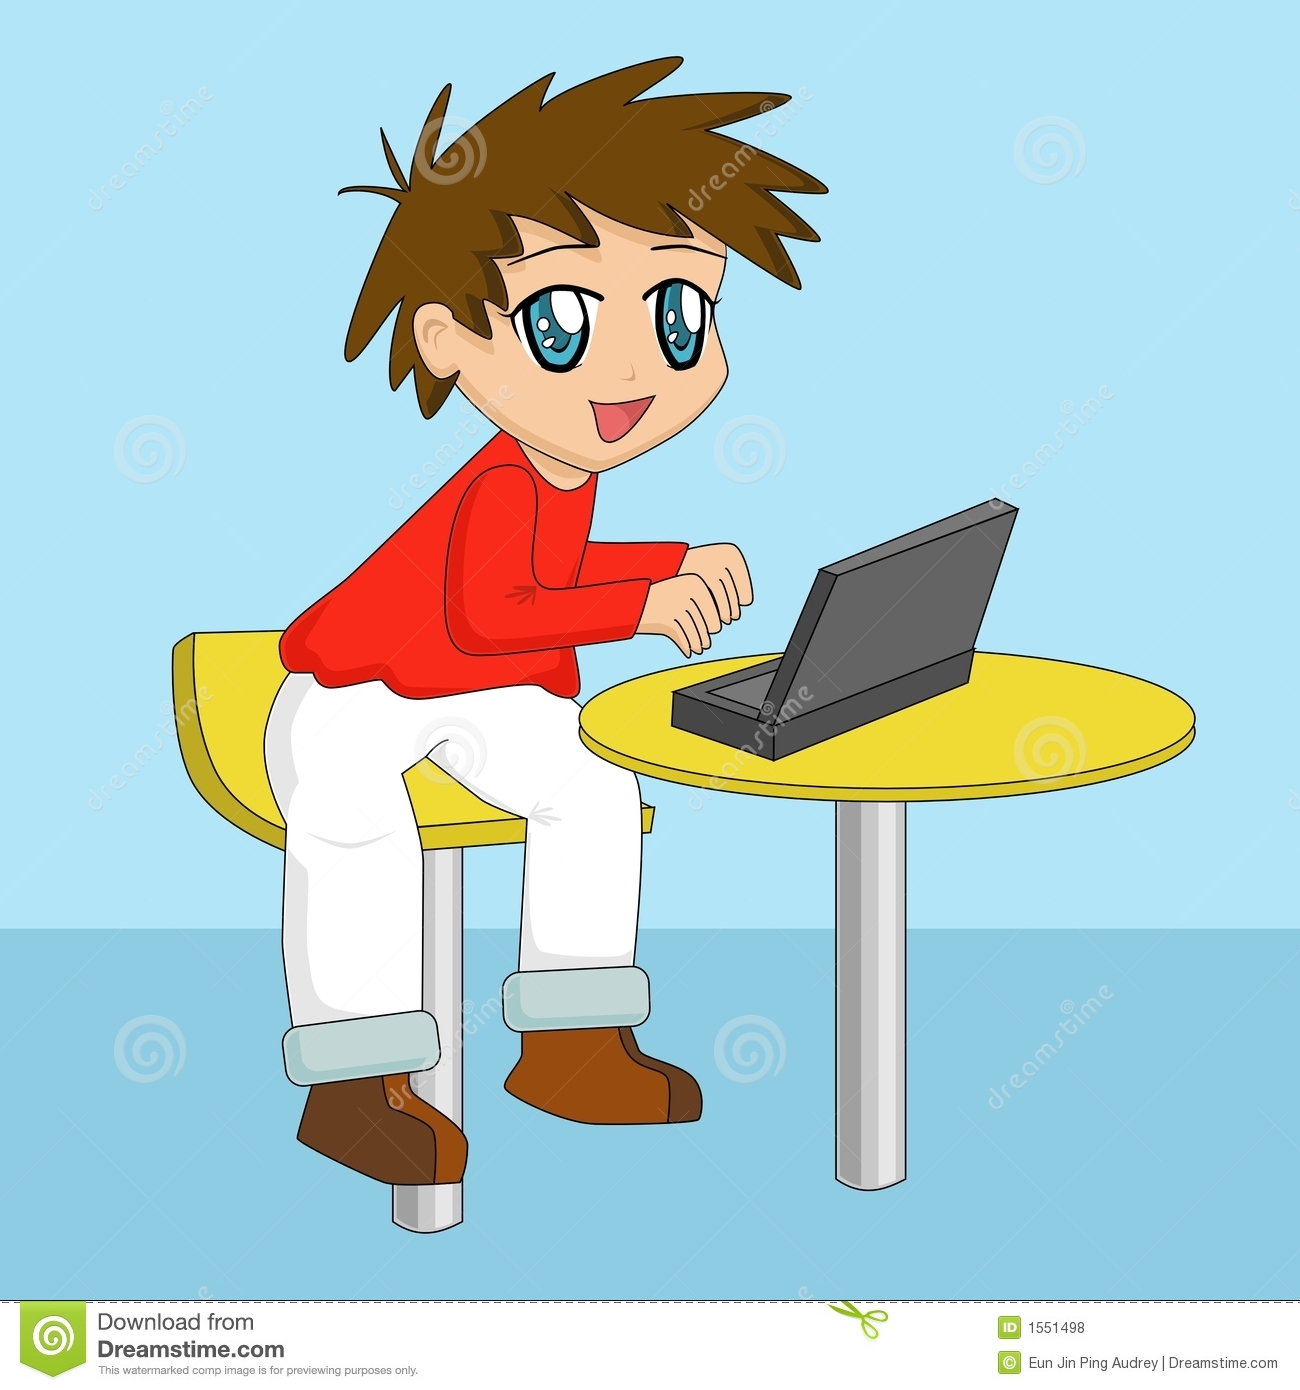 Cartoon Boy Using Laptop Royalty Free Stock Photos - Image: 1551498